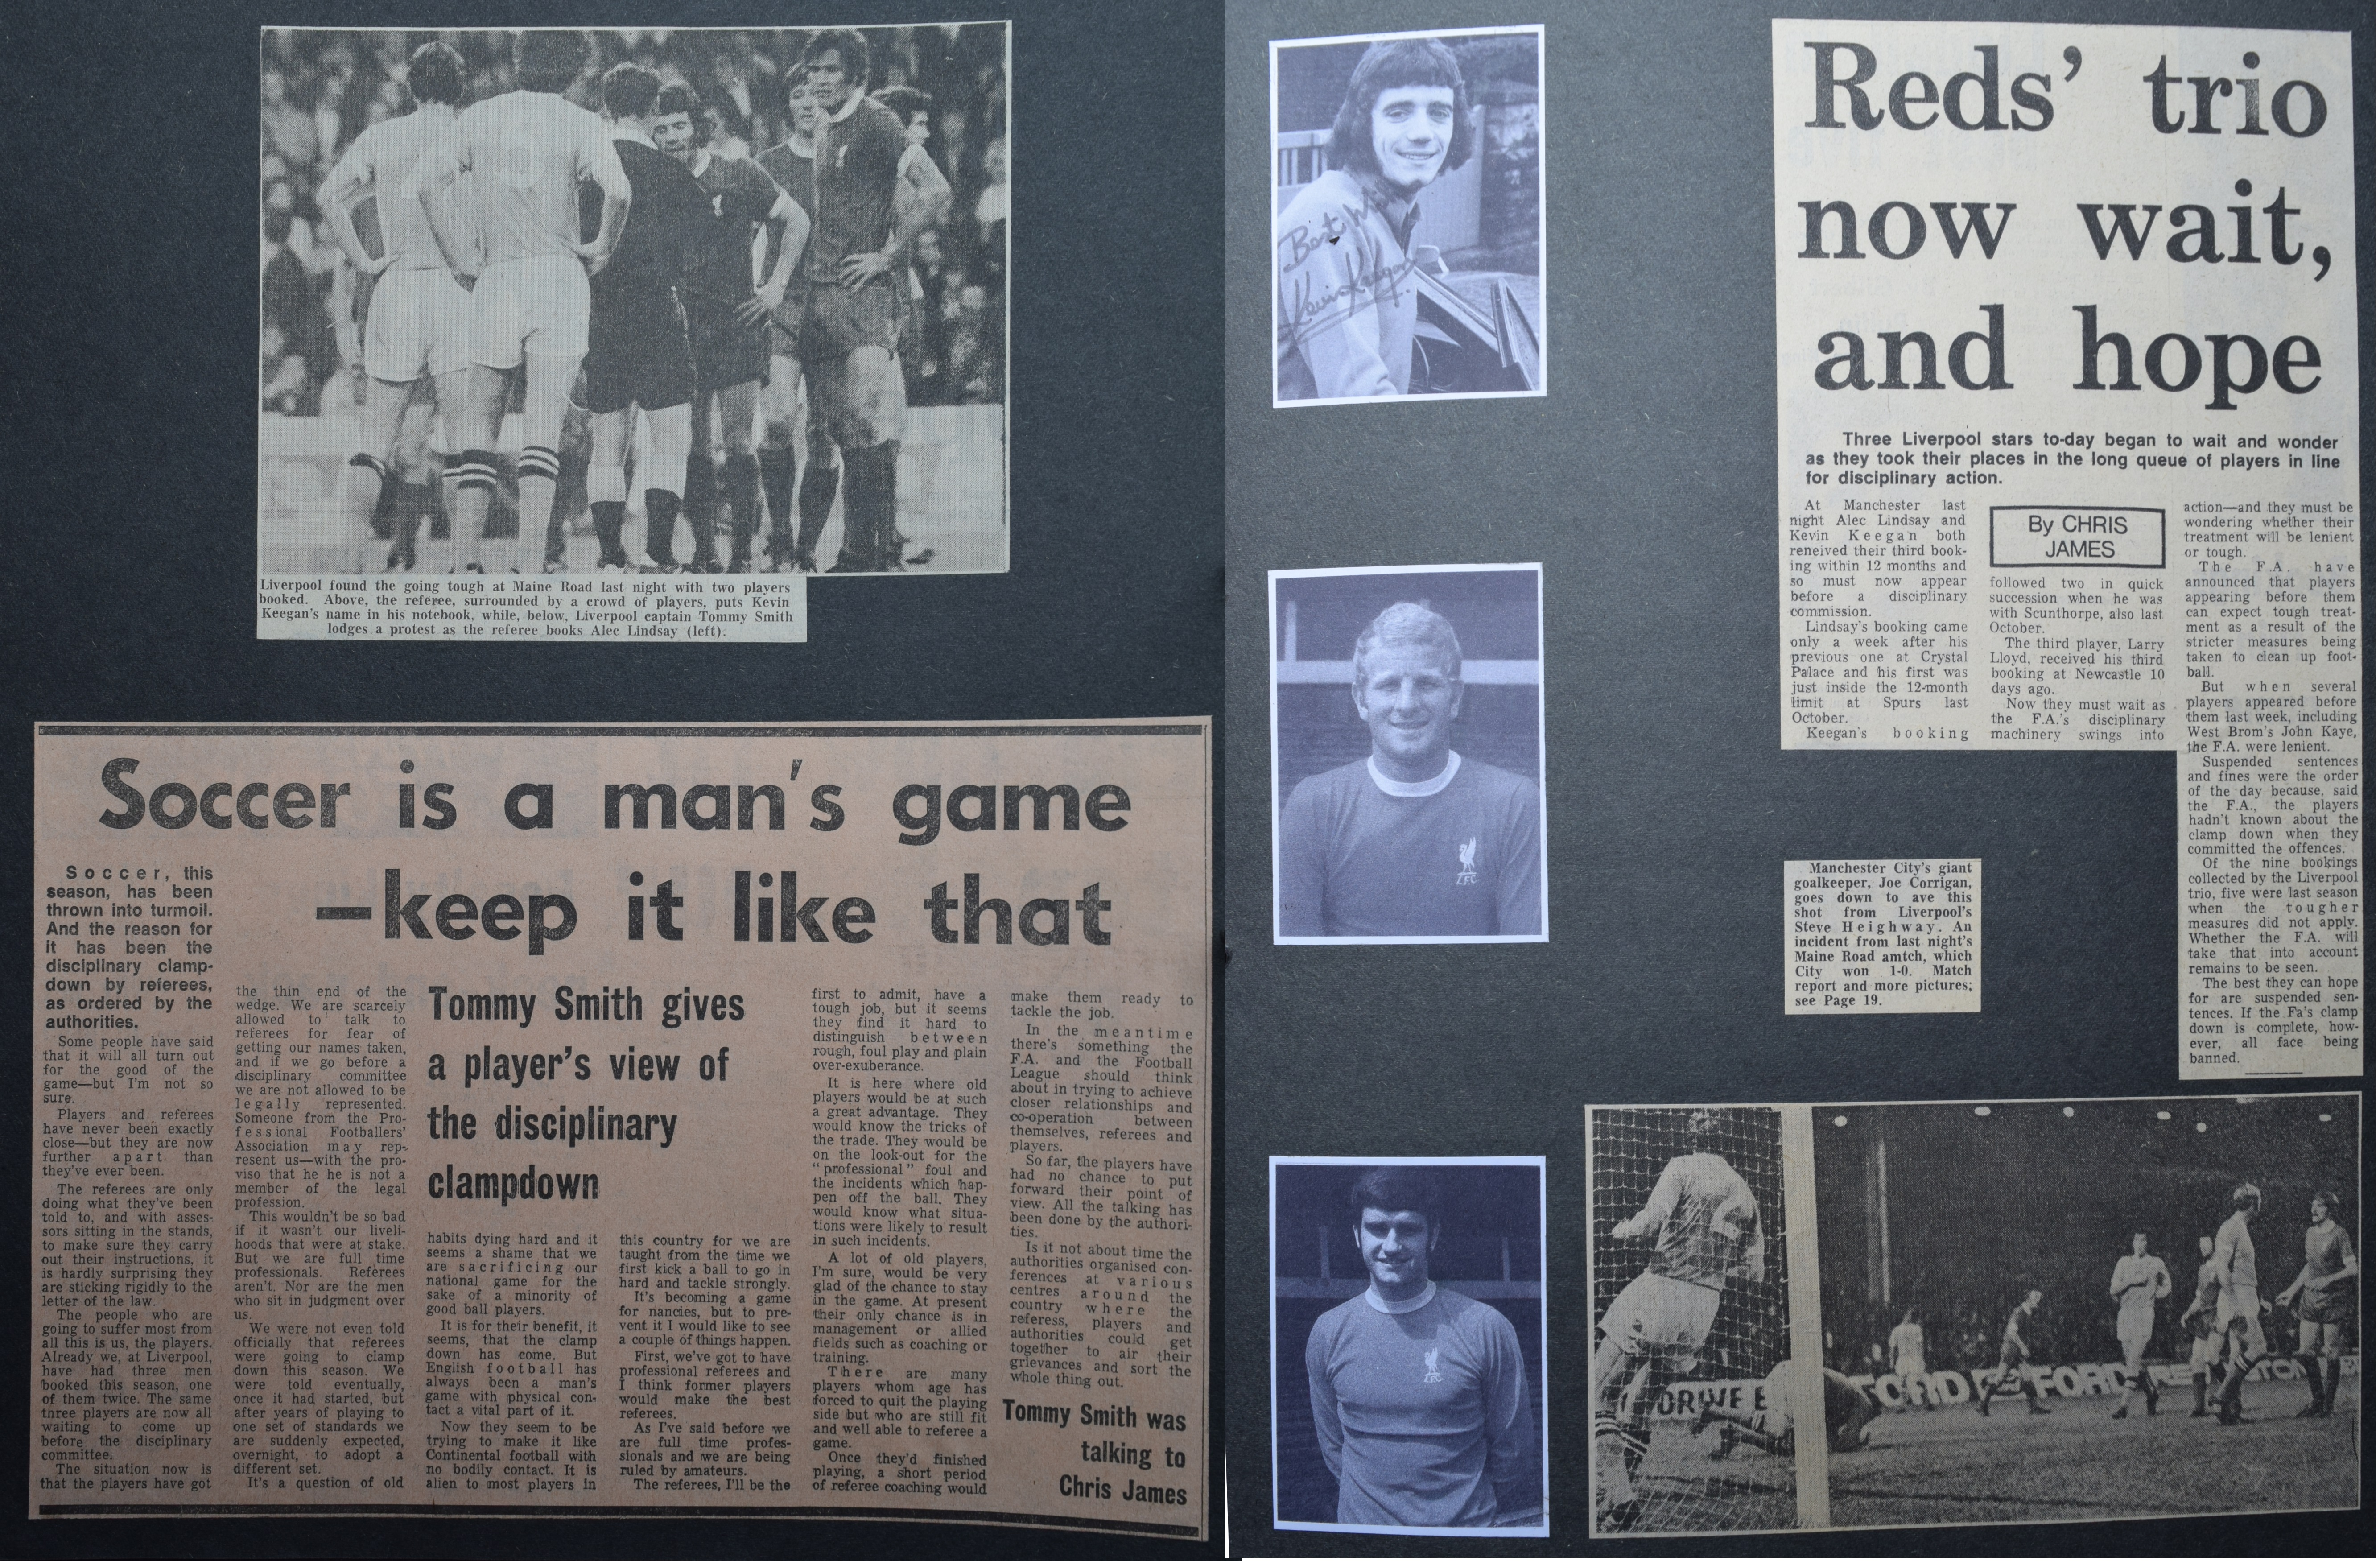 Soccer is a man's game - 1 September 1971